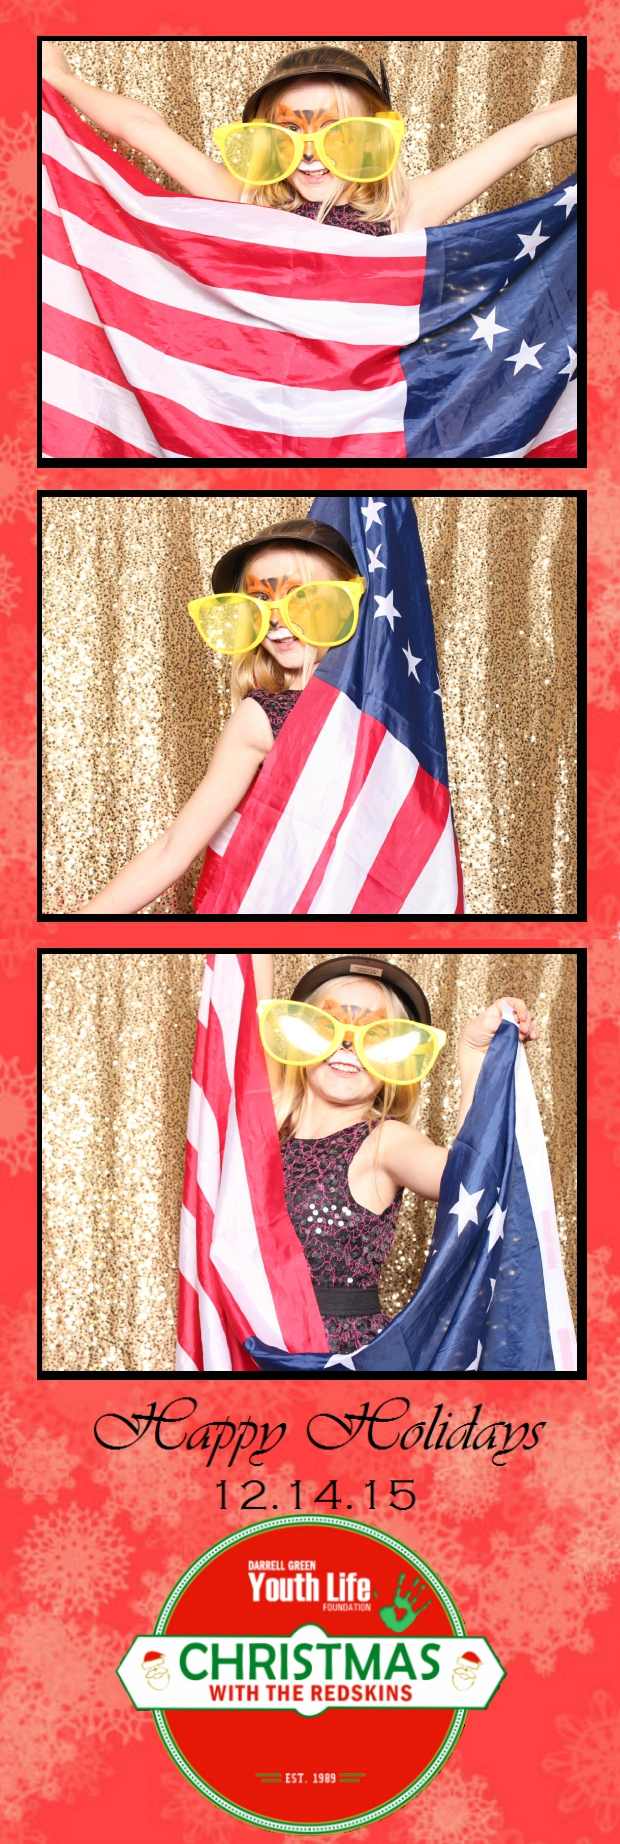 Guest House Events Photo Booth DGYLF Strips (59).jpg